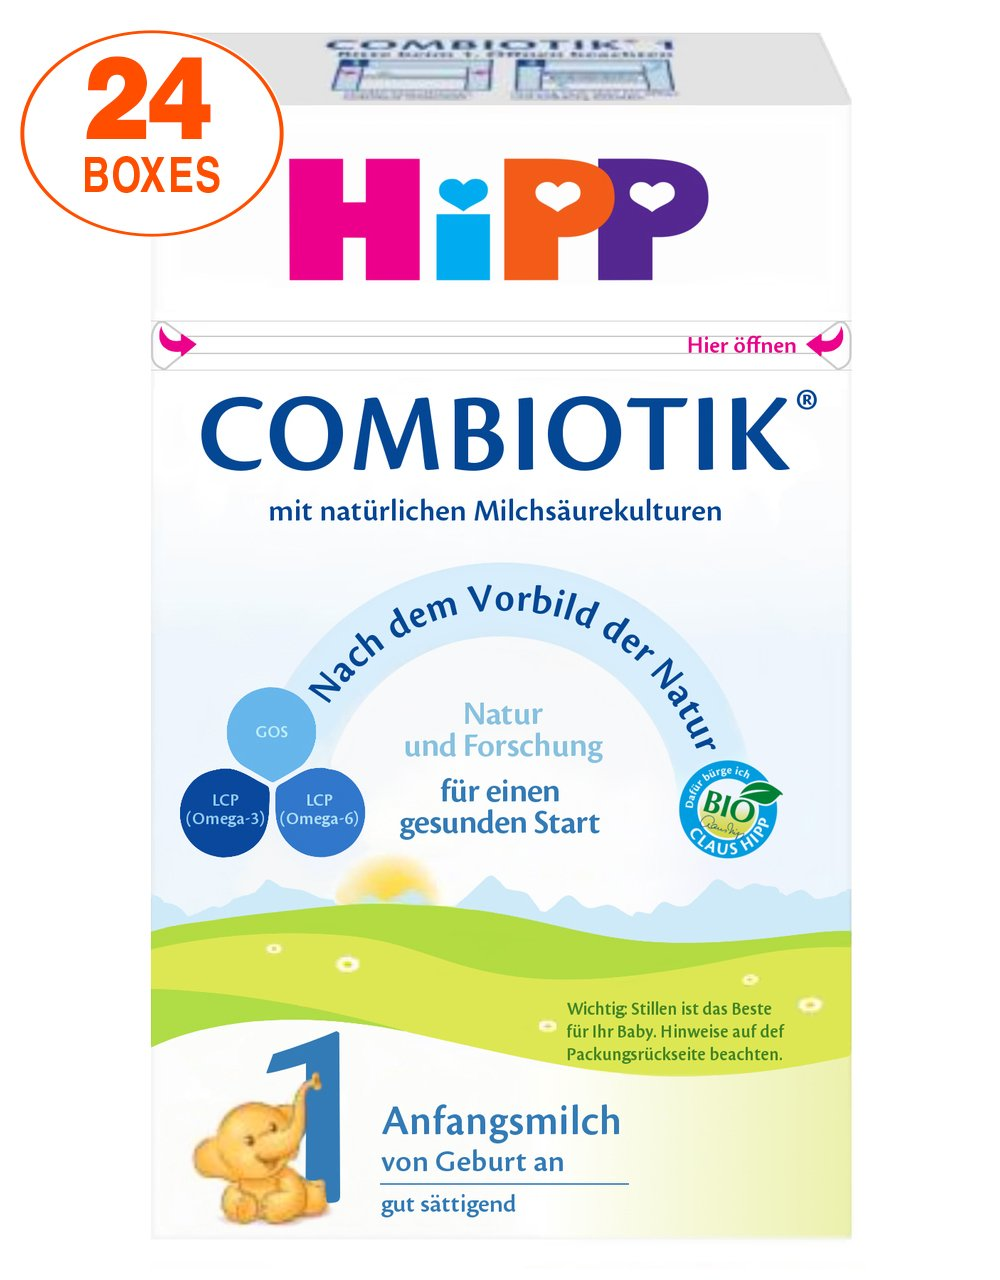 HiPP Stage 1 Organic (Bio) Combiotic Infant Milk Formula (600g) - German Version 24 BOXES